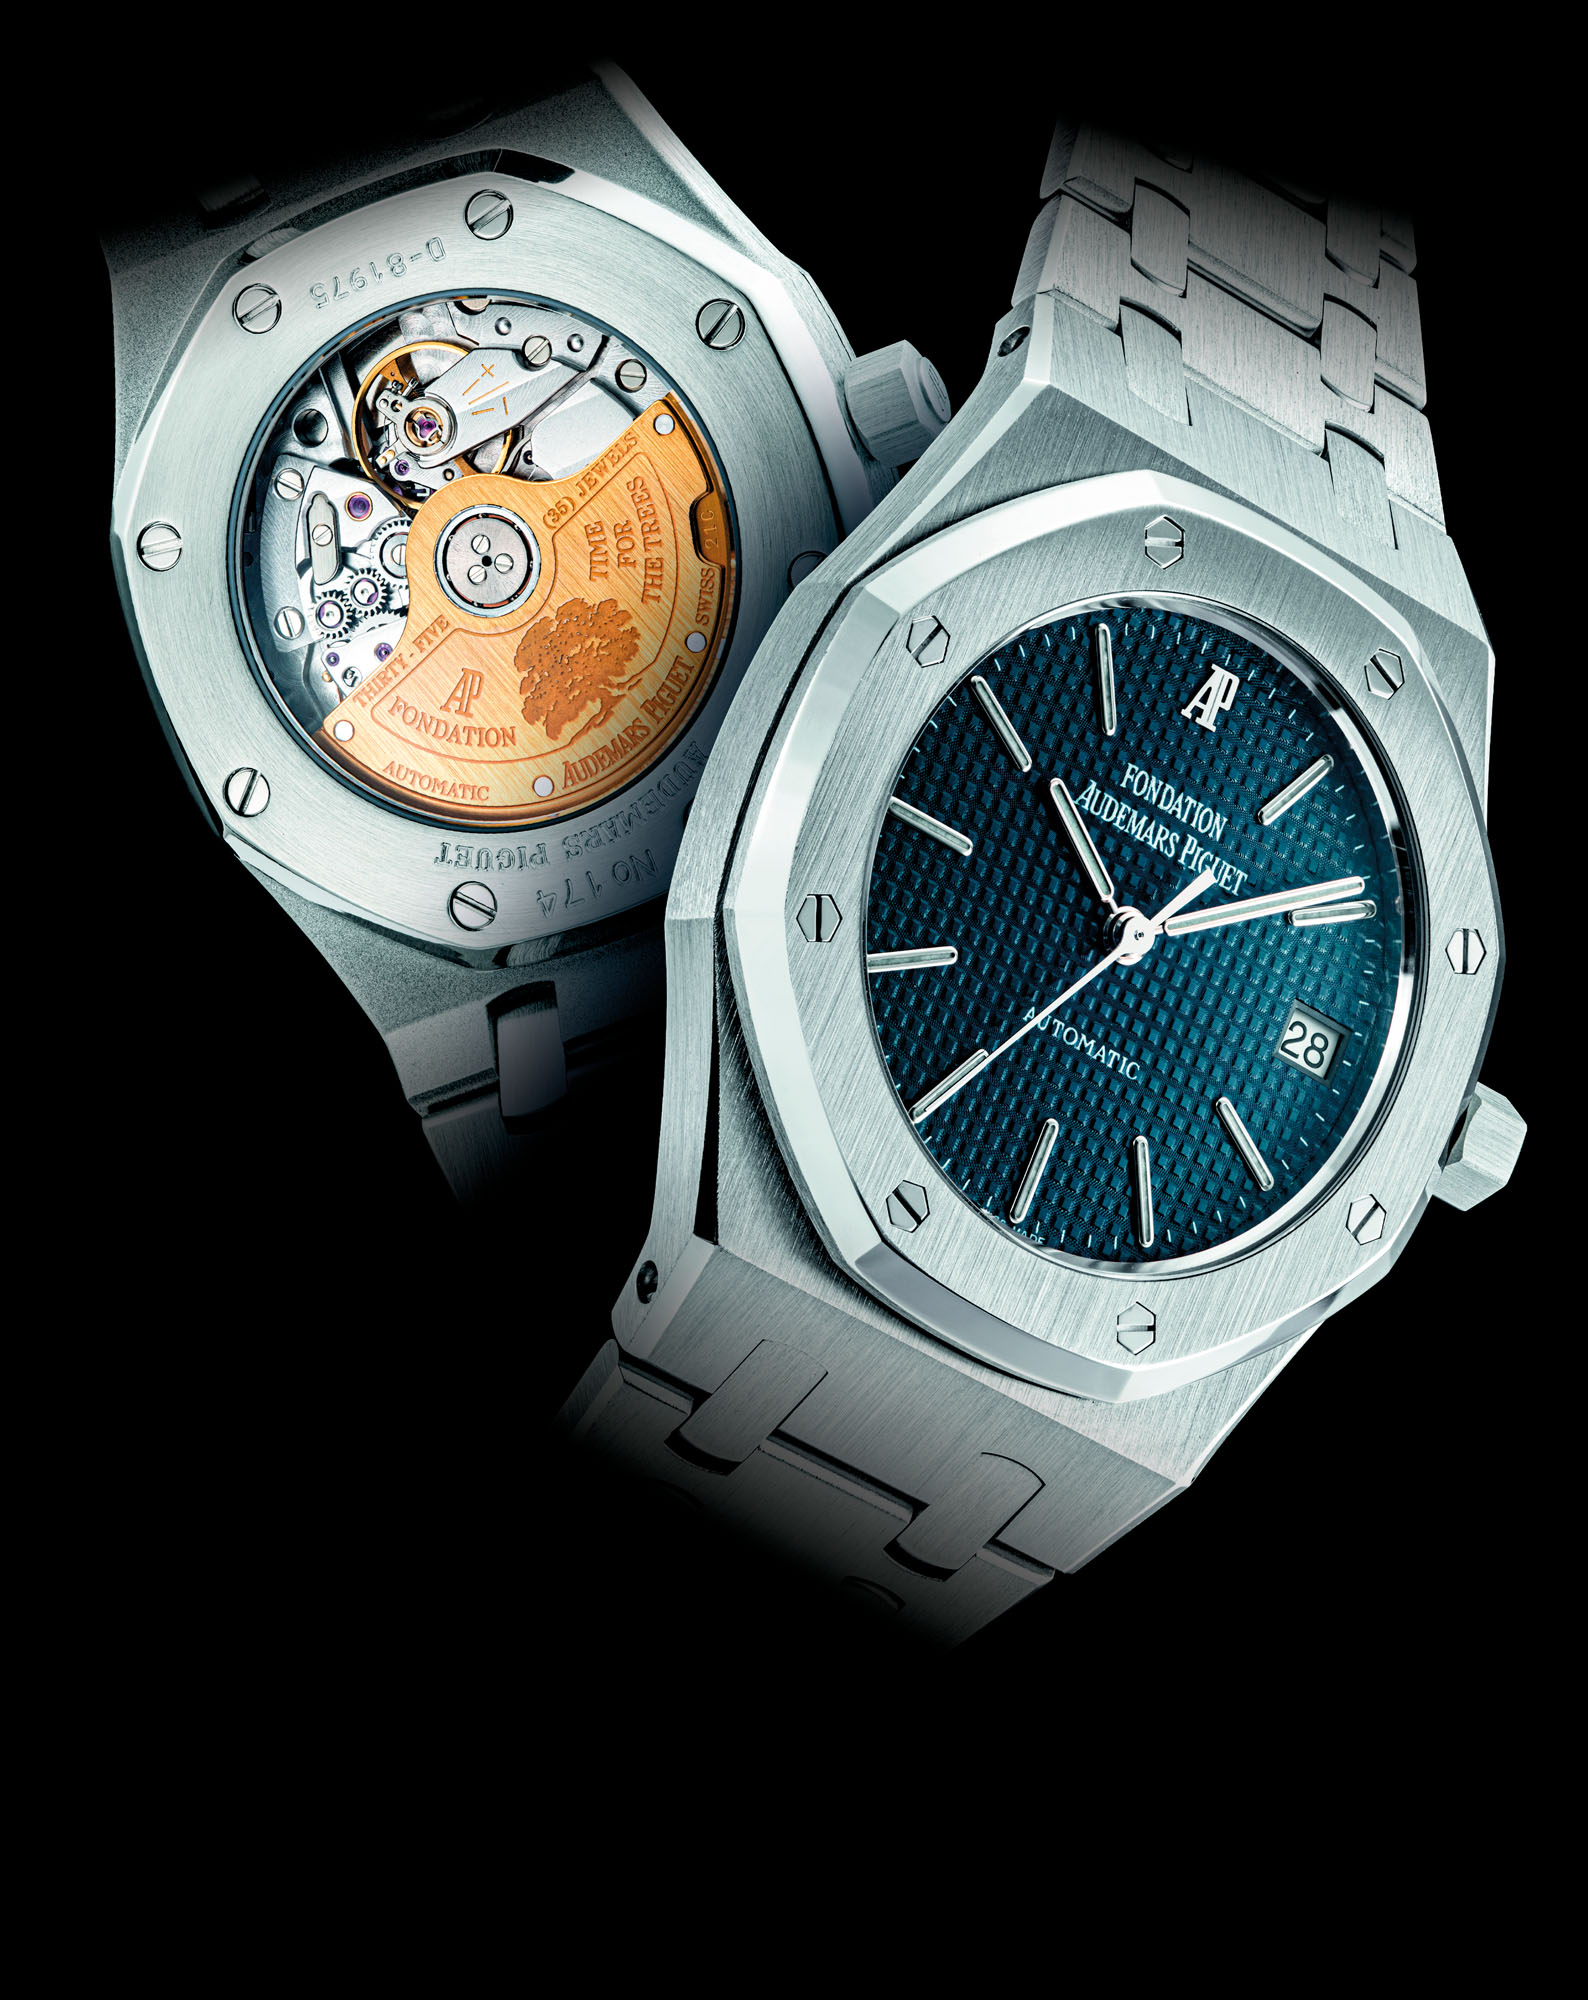 AUDEMARS PIGUET. A STAINLESS STEEL LIMITED EDITION AUTOMATIC WRISTWATCH WITH SWEEP CENTRE SECONDS, DATE AND BRACELET